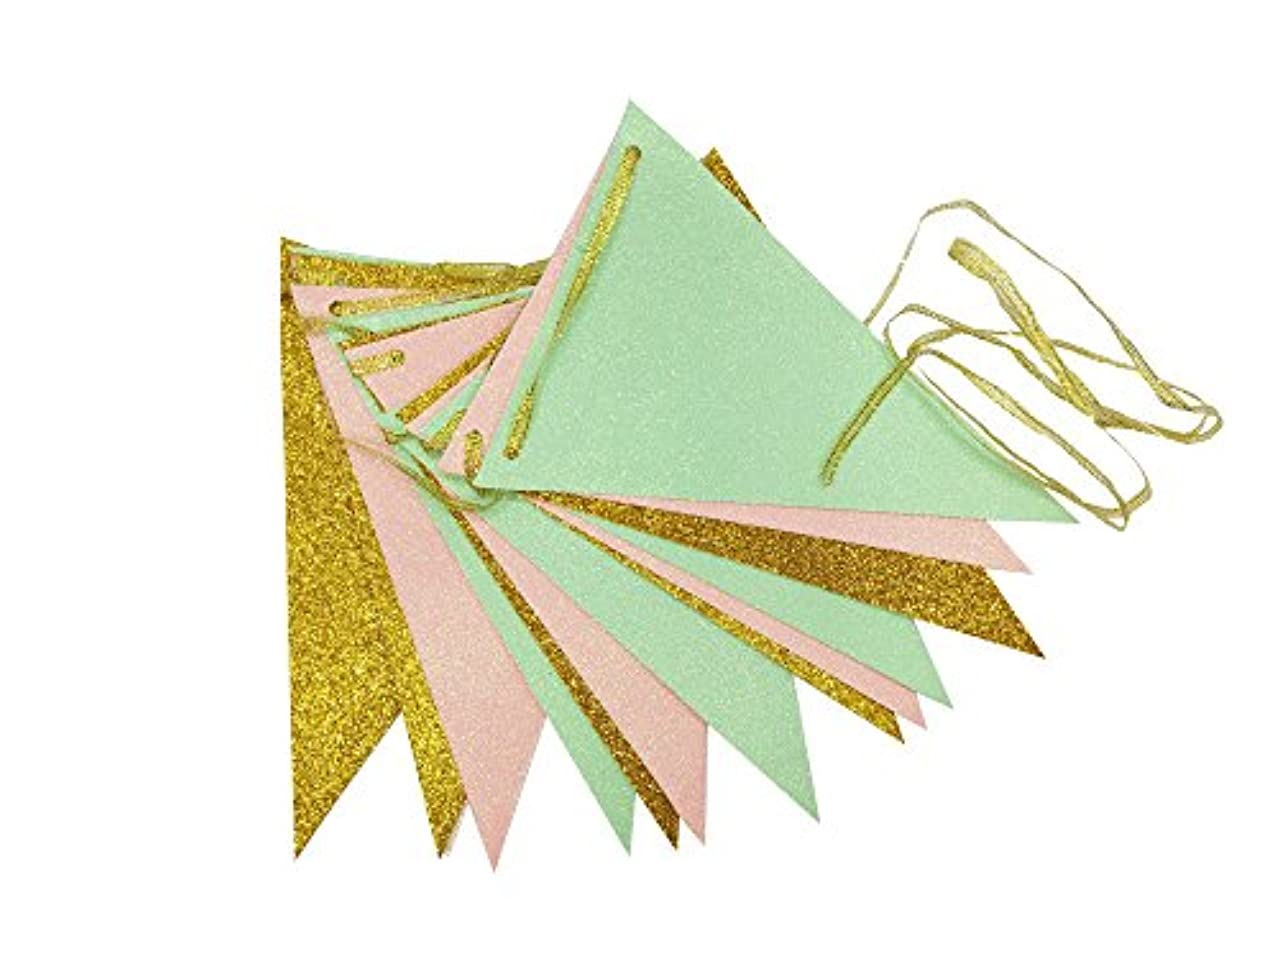 Waner Vintage Style Triangle Flags Bunting Banner Cute Pennants for Wedding Birthday Baby Shower Party Banners (10 feet) (Mint Green, Yellow Gold, Peach Pink)